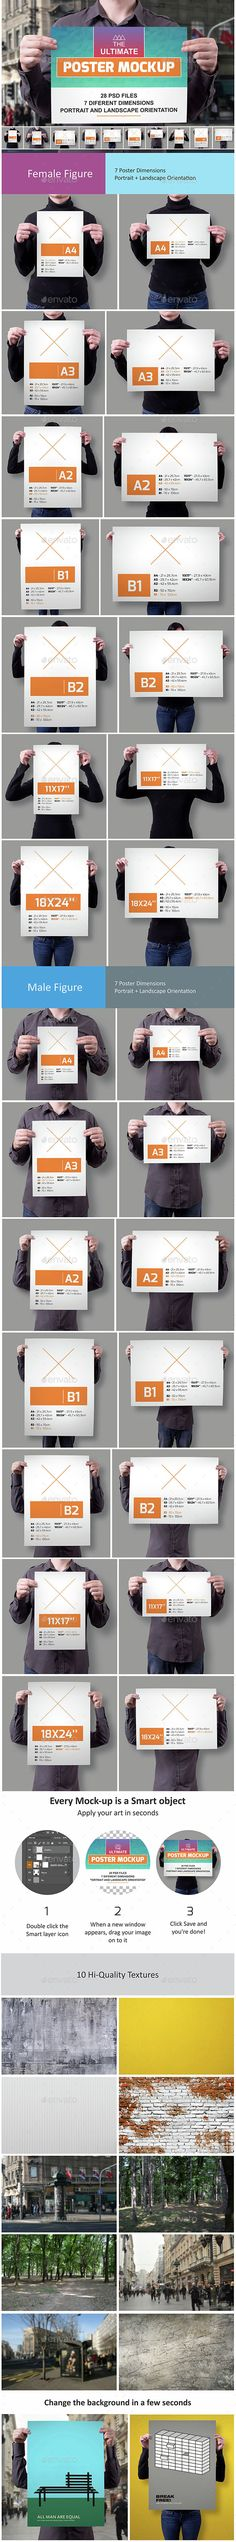 The Ultimate Poster Mockup  #presentation #psd #template • Available here → http://graphicriver.net/item/the-ultimate-poster-mockup/15117541?s_rank=141&ref=pxcr